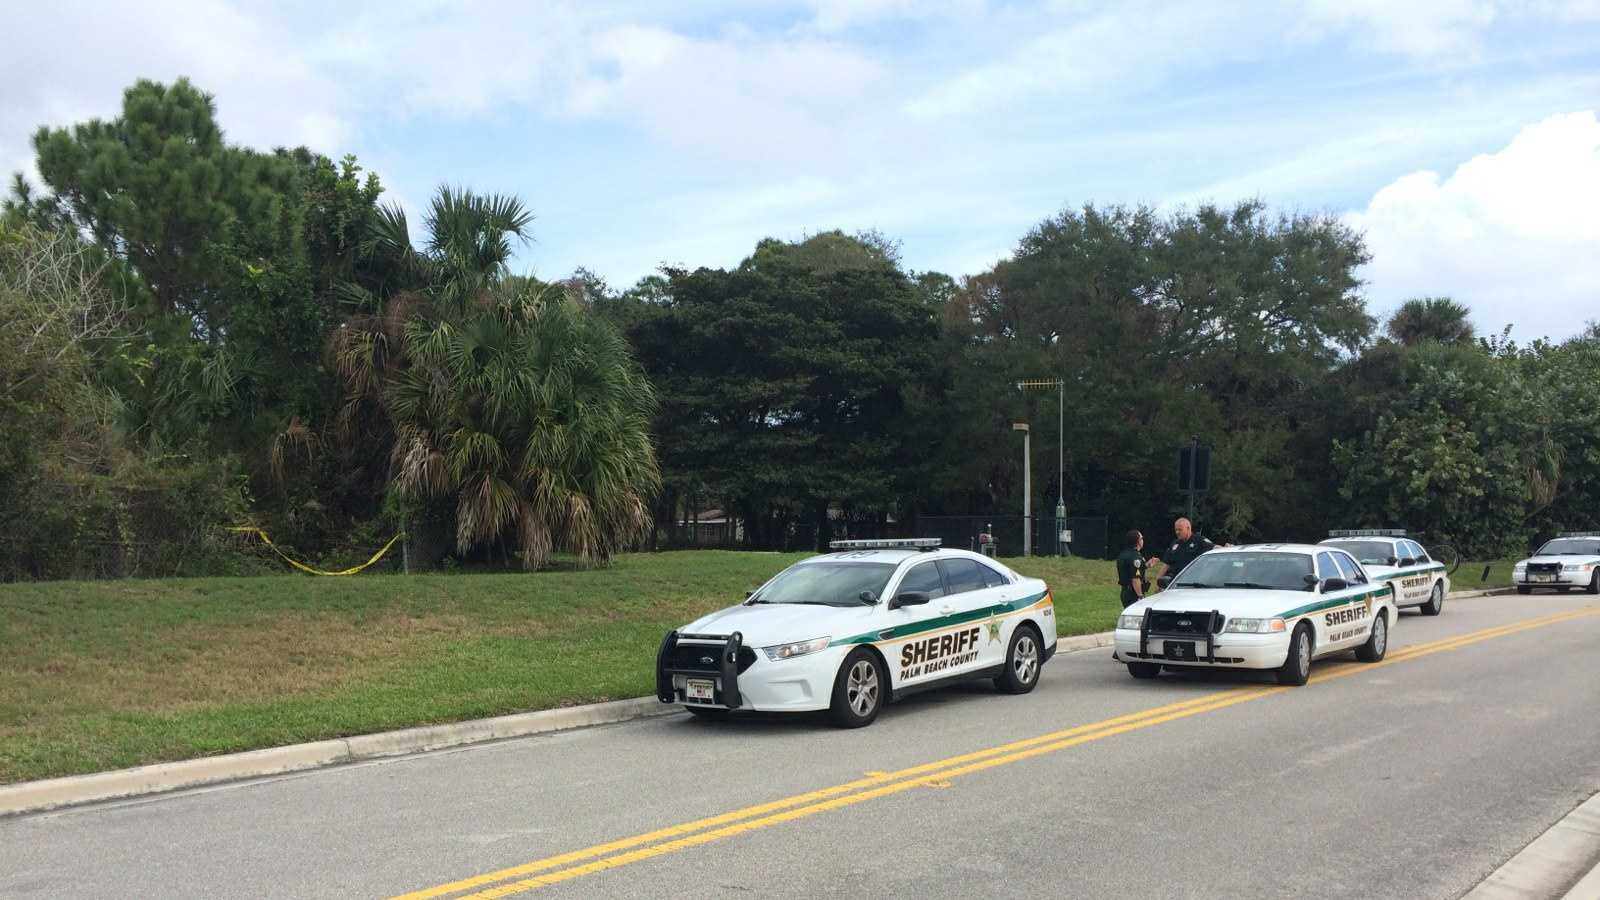 Badly decomposed body found in unincorporated Palm Beach Gardens